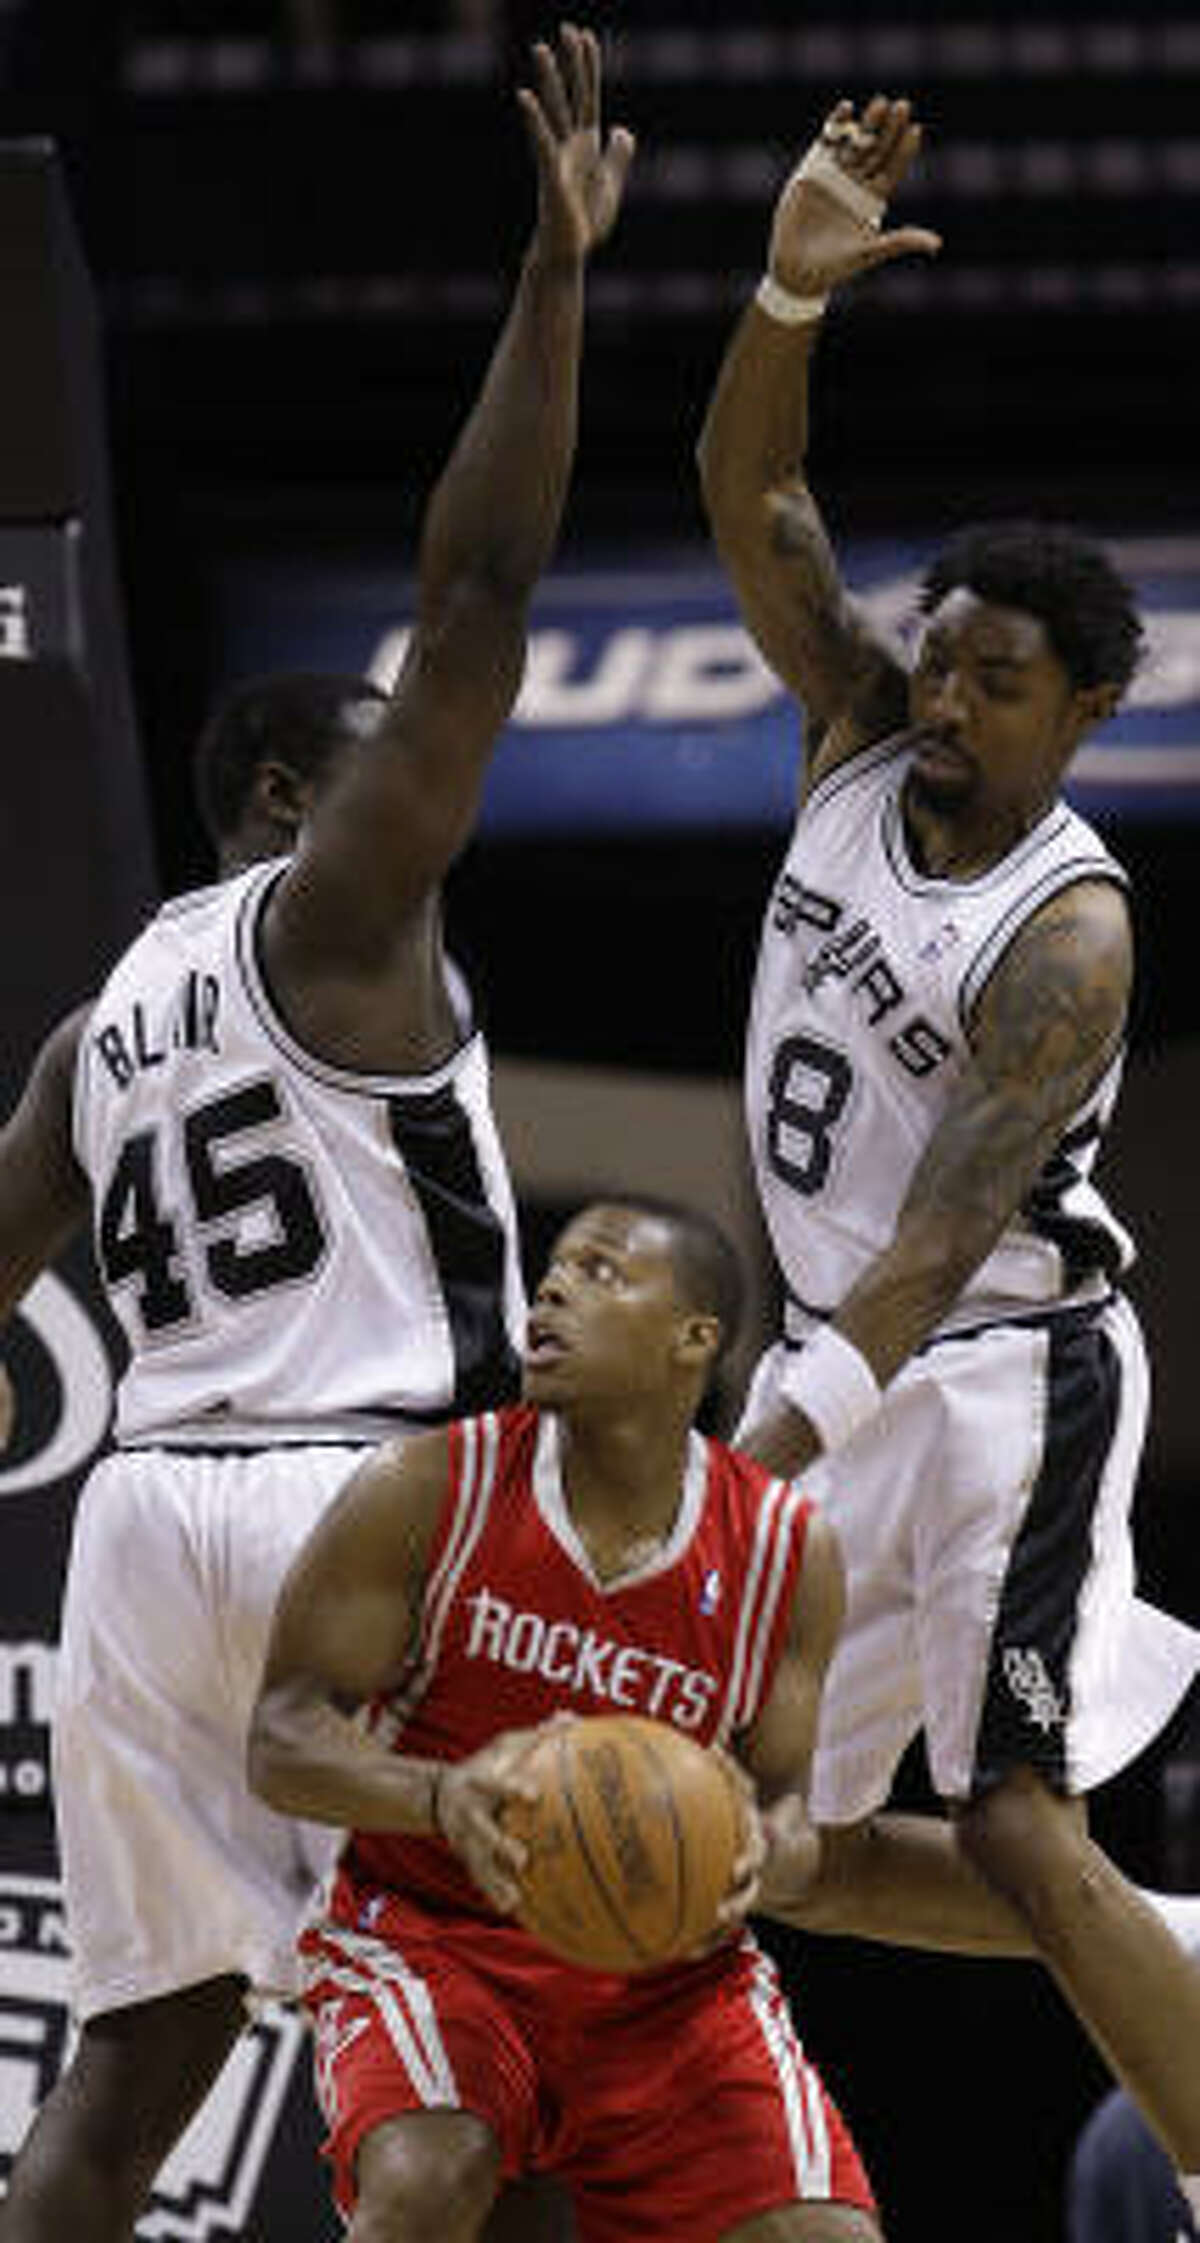 Rockets guard Kyle Lowry, center, is defended by San Antonio Spurs' DeJuan Blair, left, and Roger Mason, Jr.